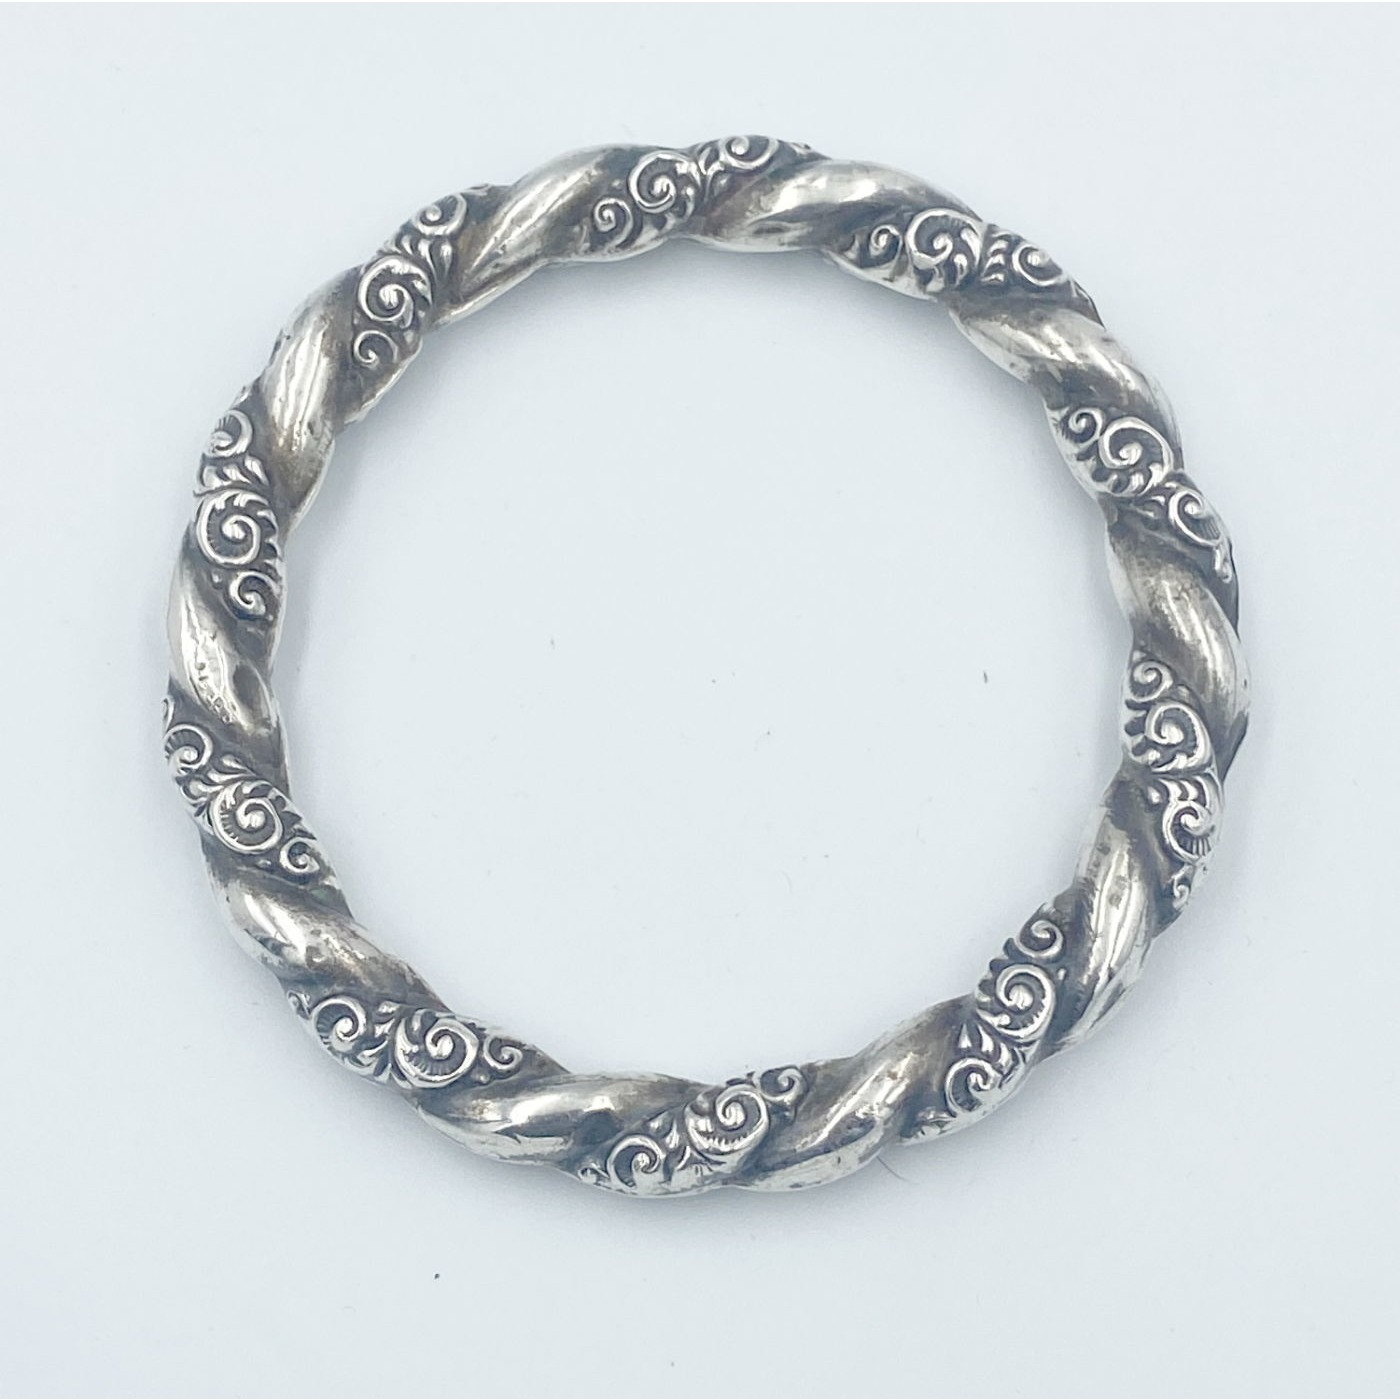 Beautiful Engraved Repousse Sterling Silver English Teething Bangle - 2